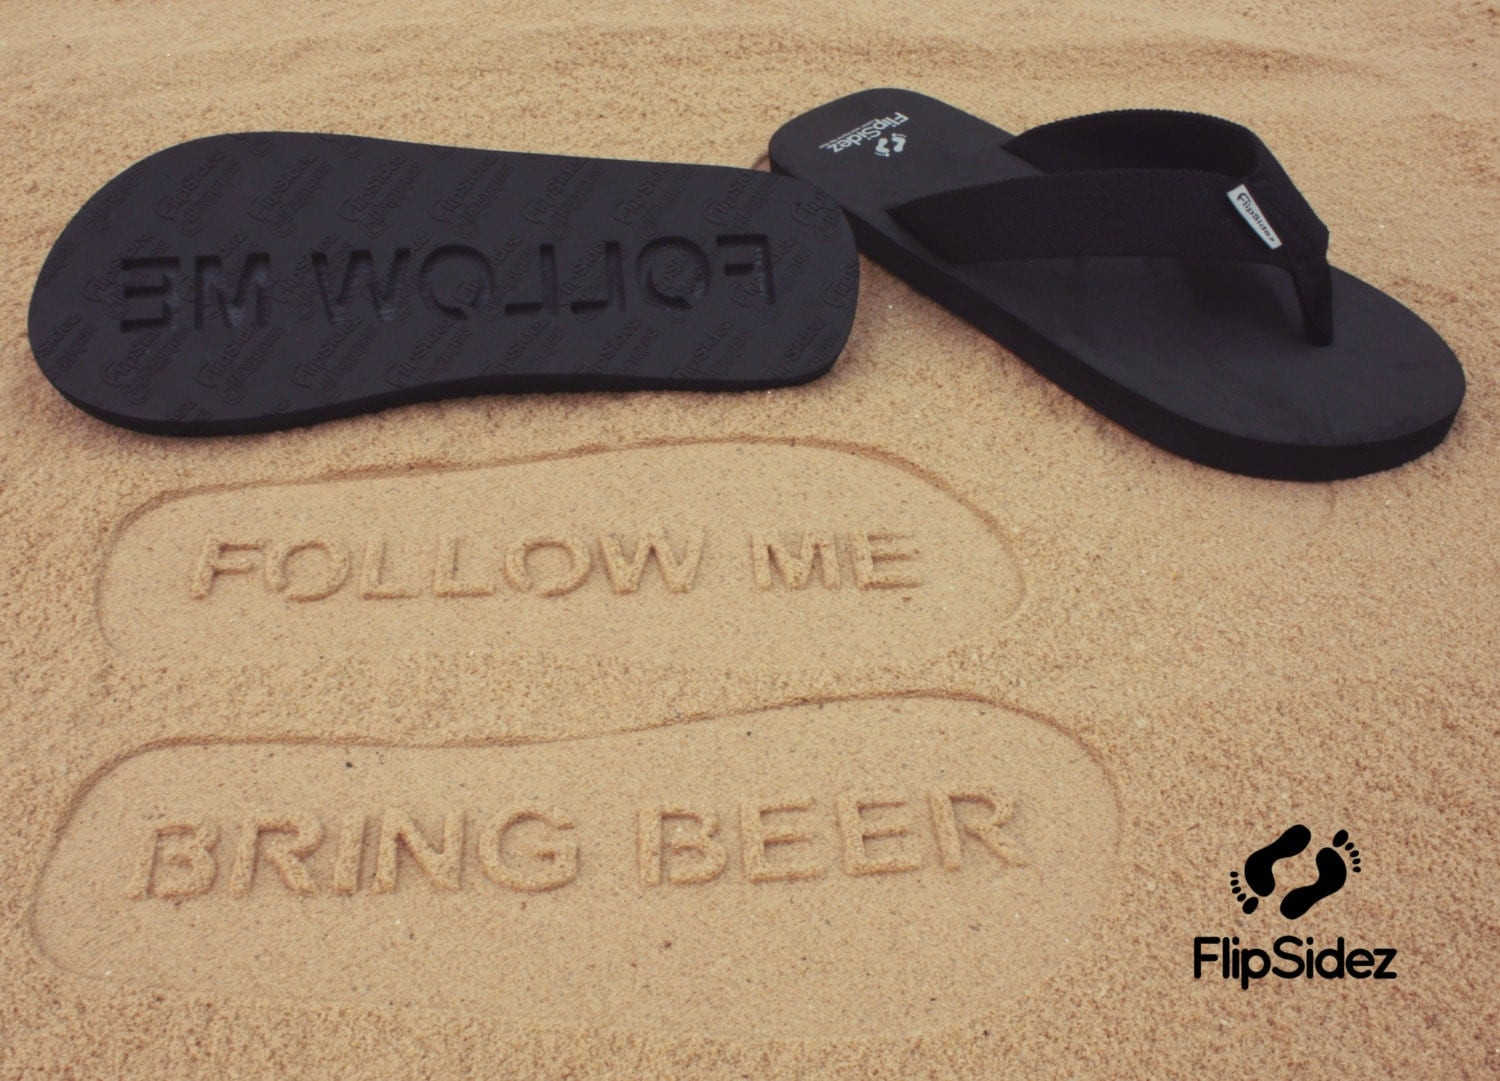 Follow Me Bring Beer Sand Imprint Sandals :) - SandImprintSandals